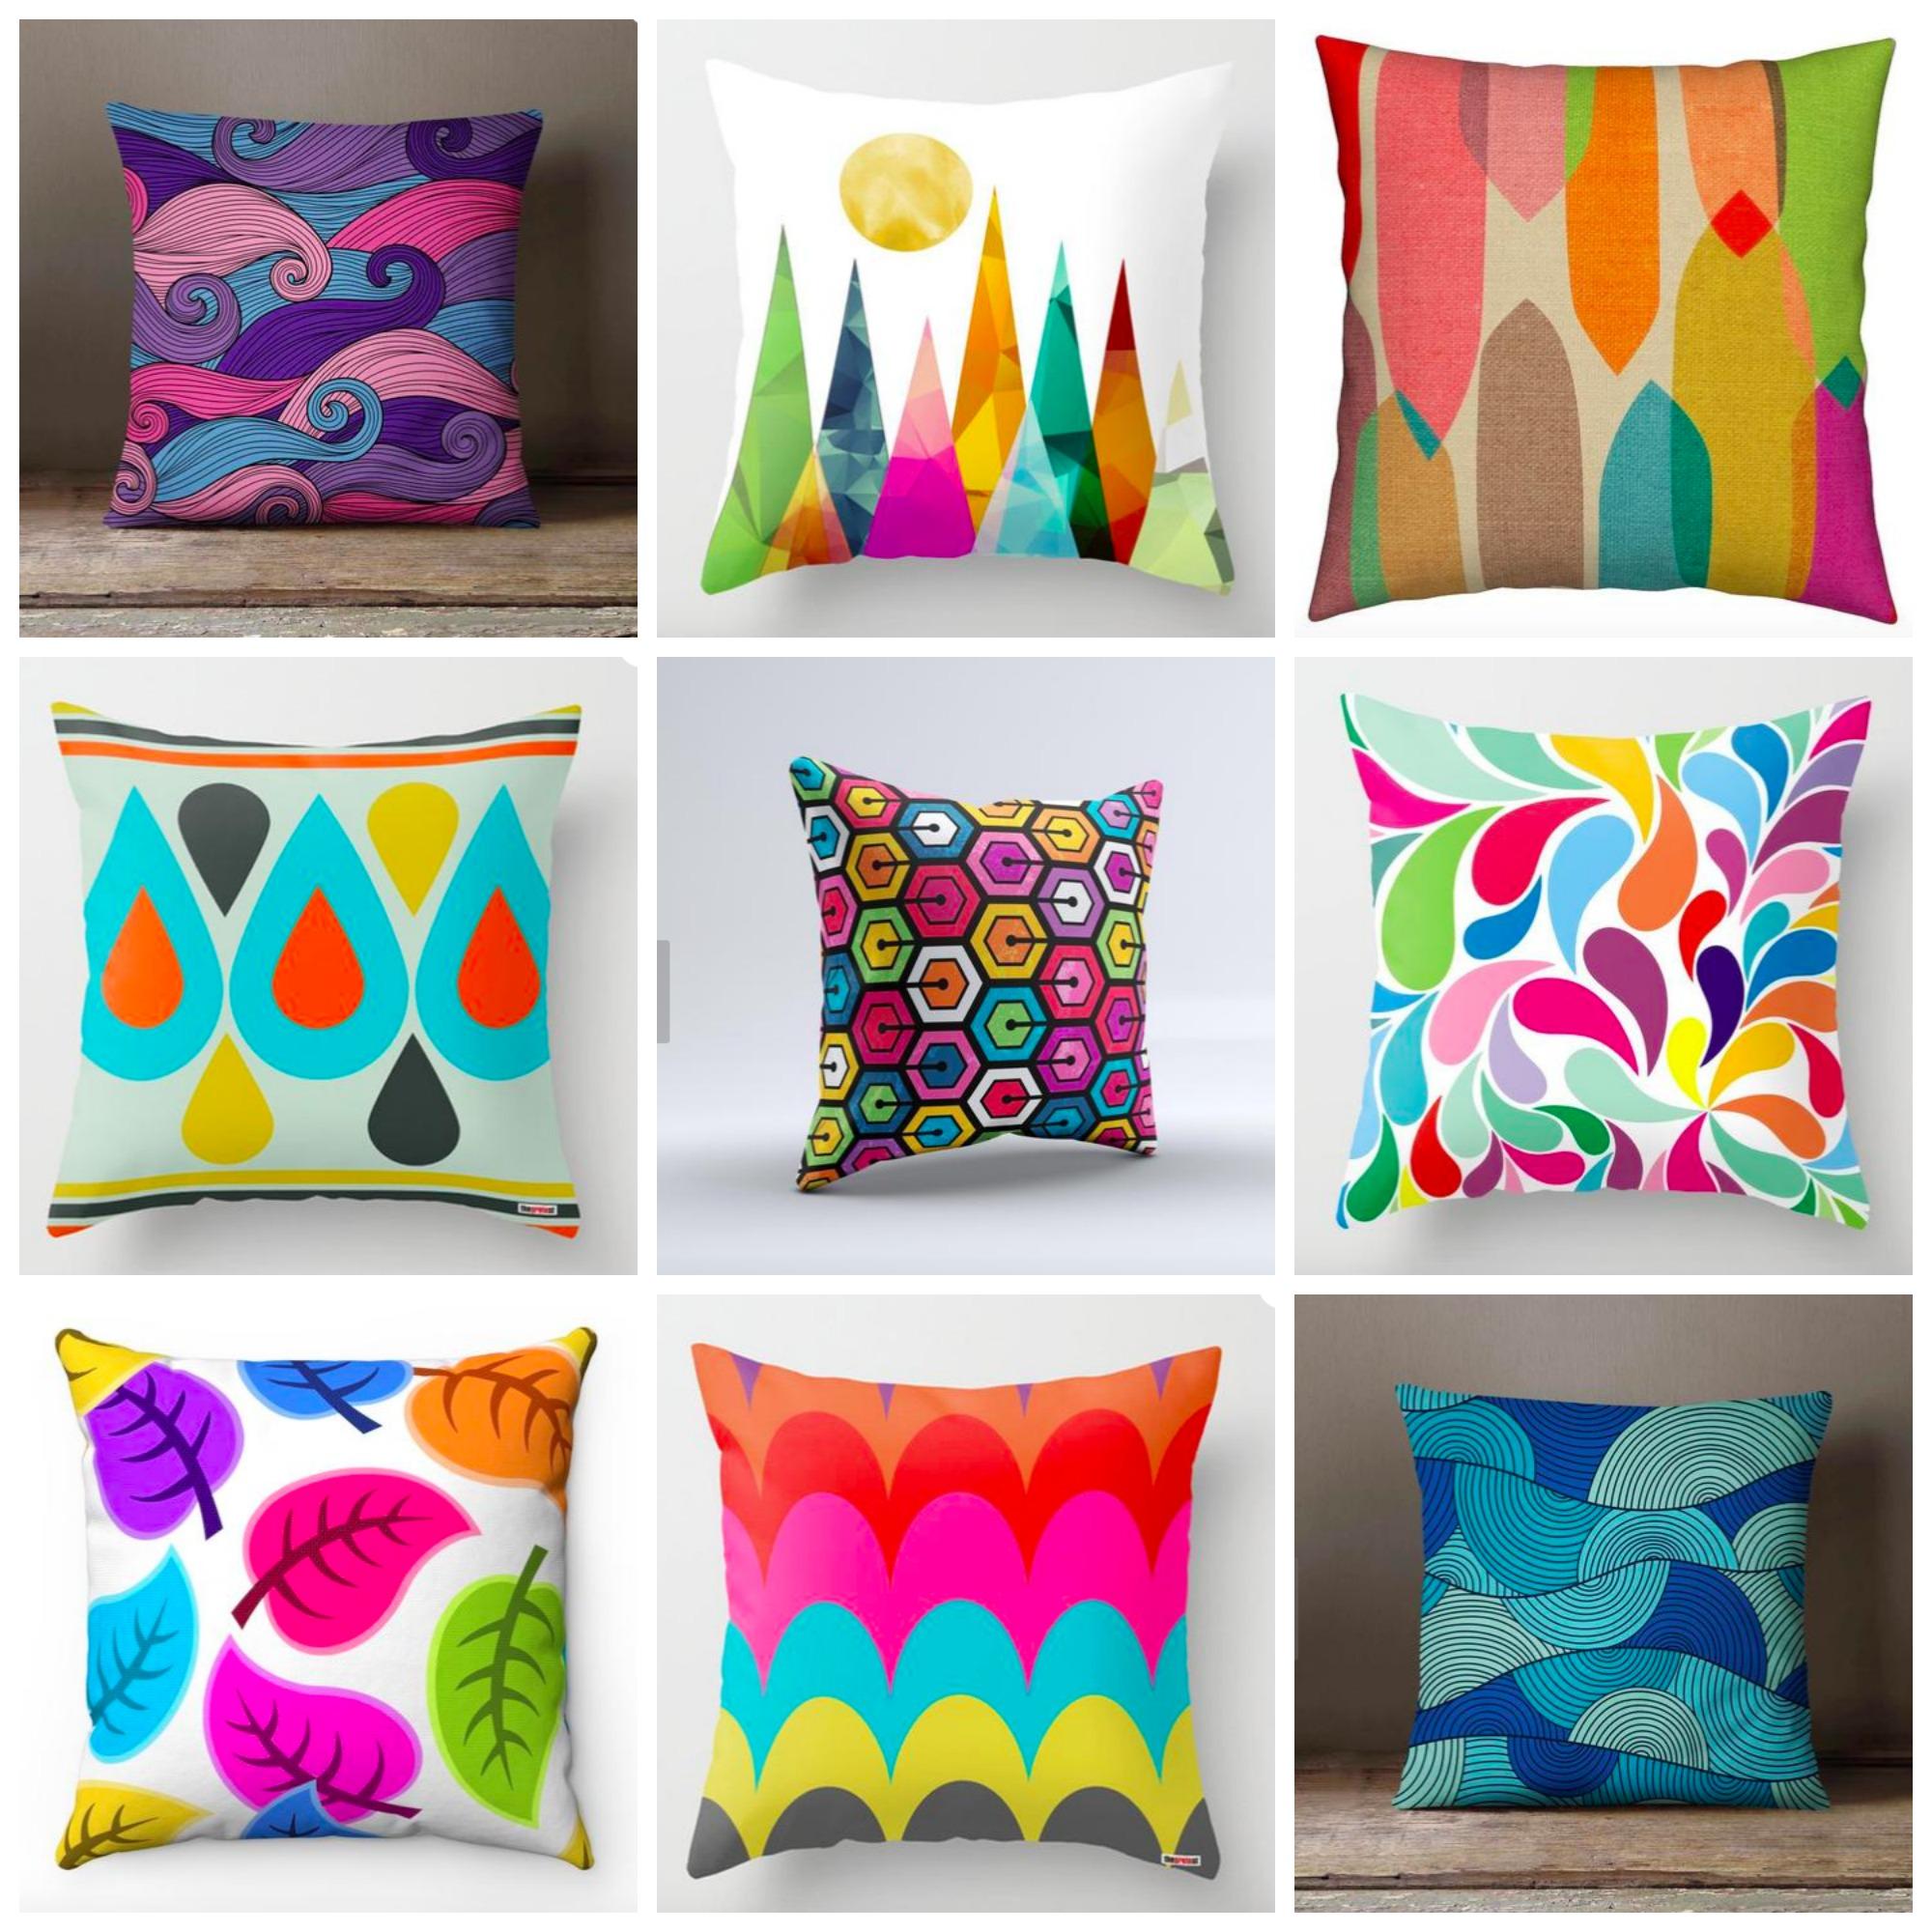 The Most Bold, Colorful and Eclectic Decorative Pillows For Your Home From Etsy Shops Featuring Geometric and Unique Color Patterns